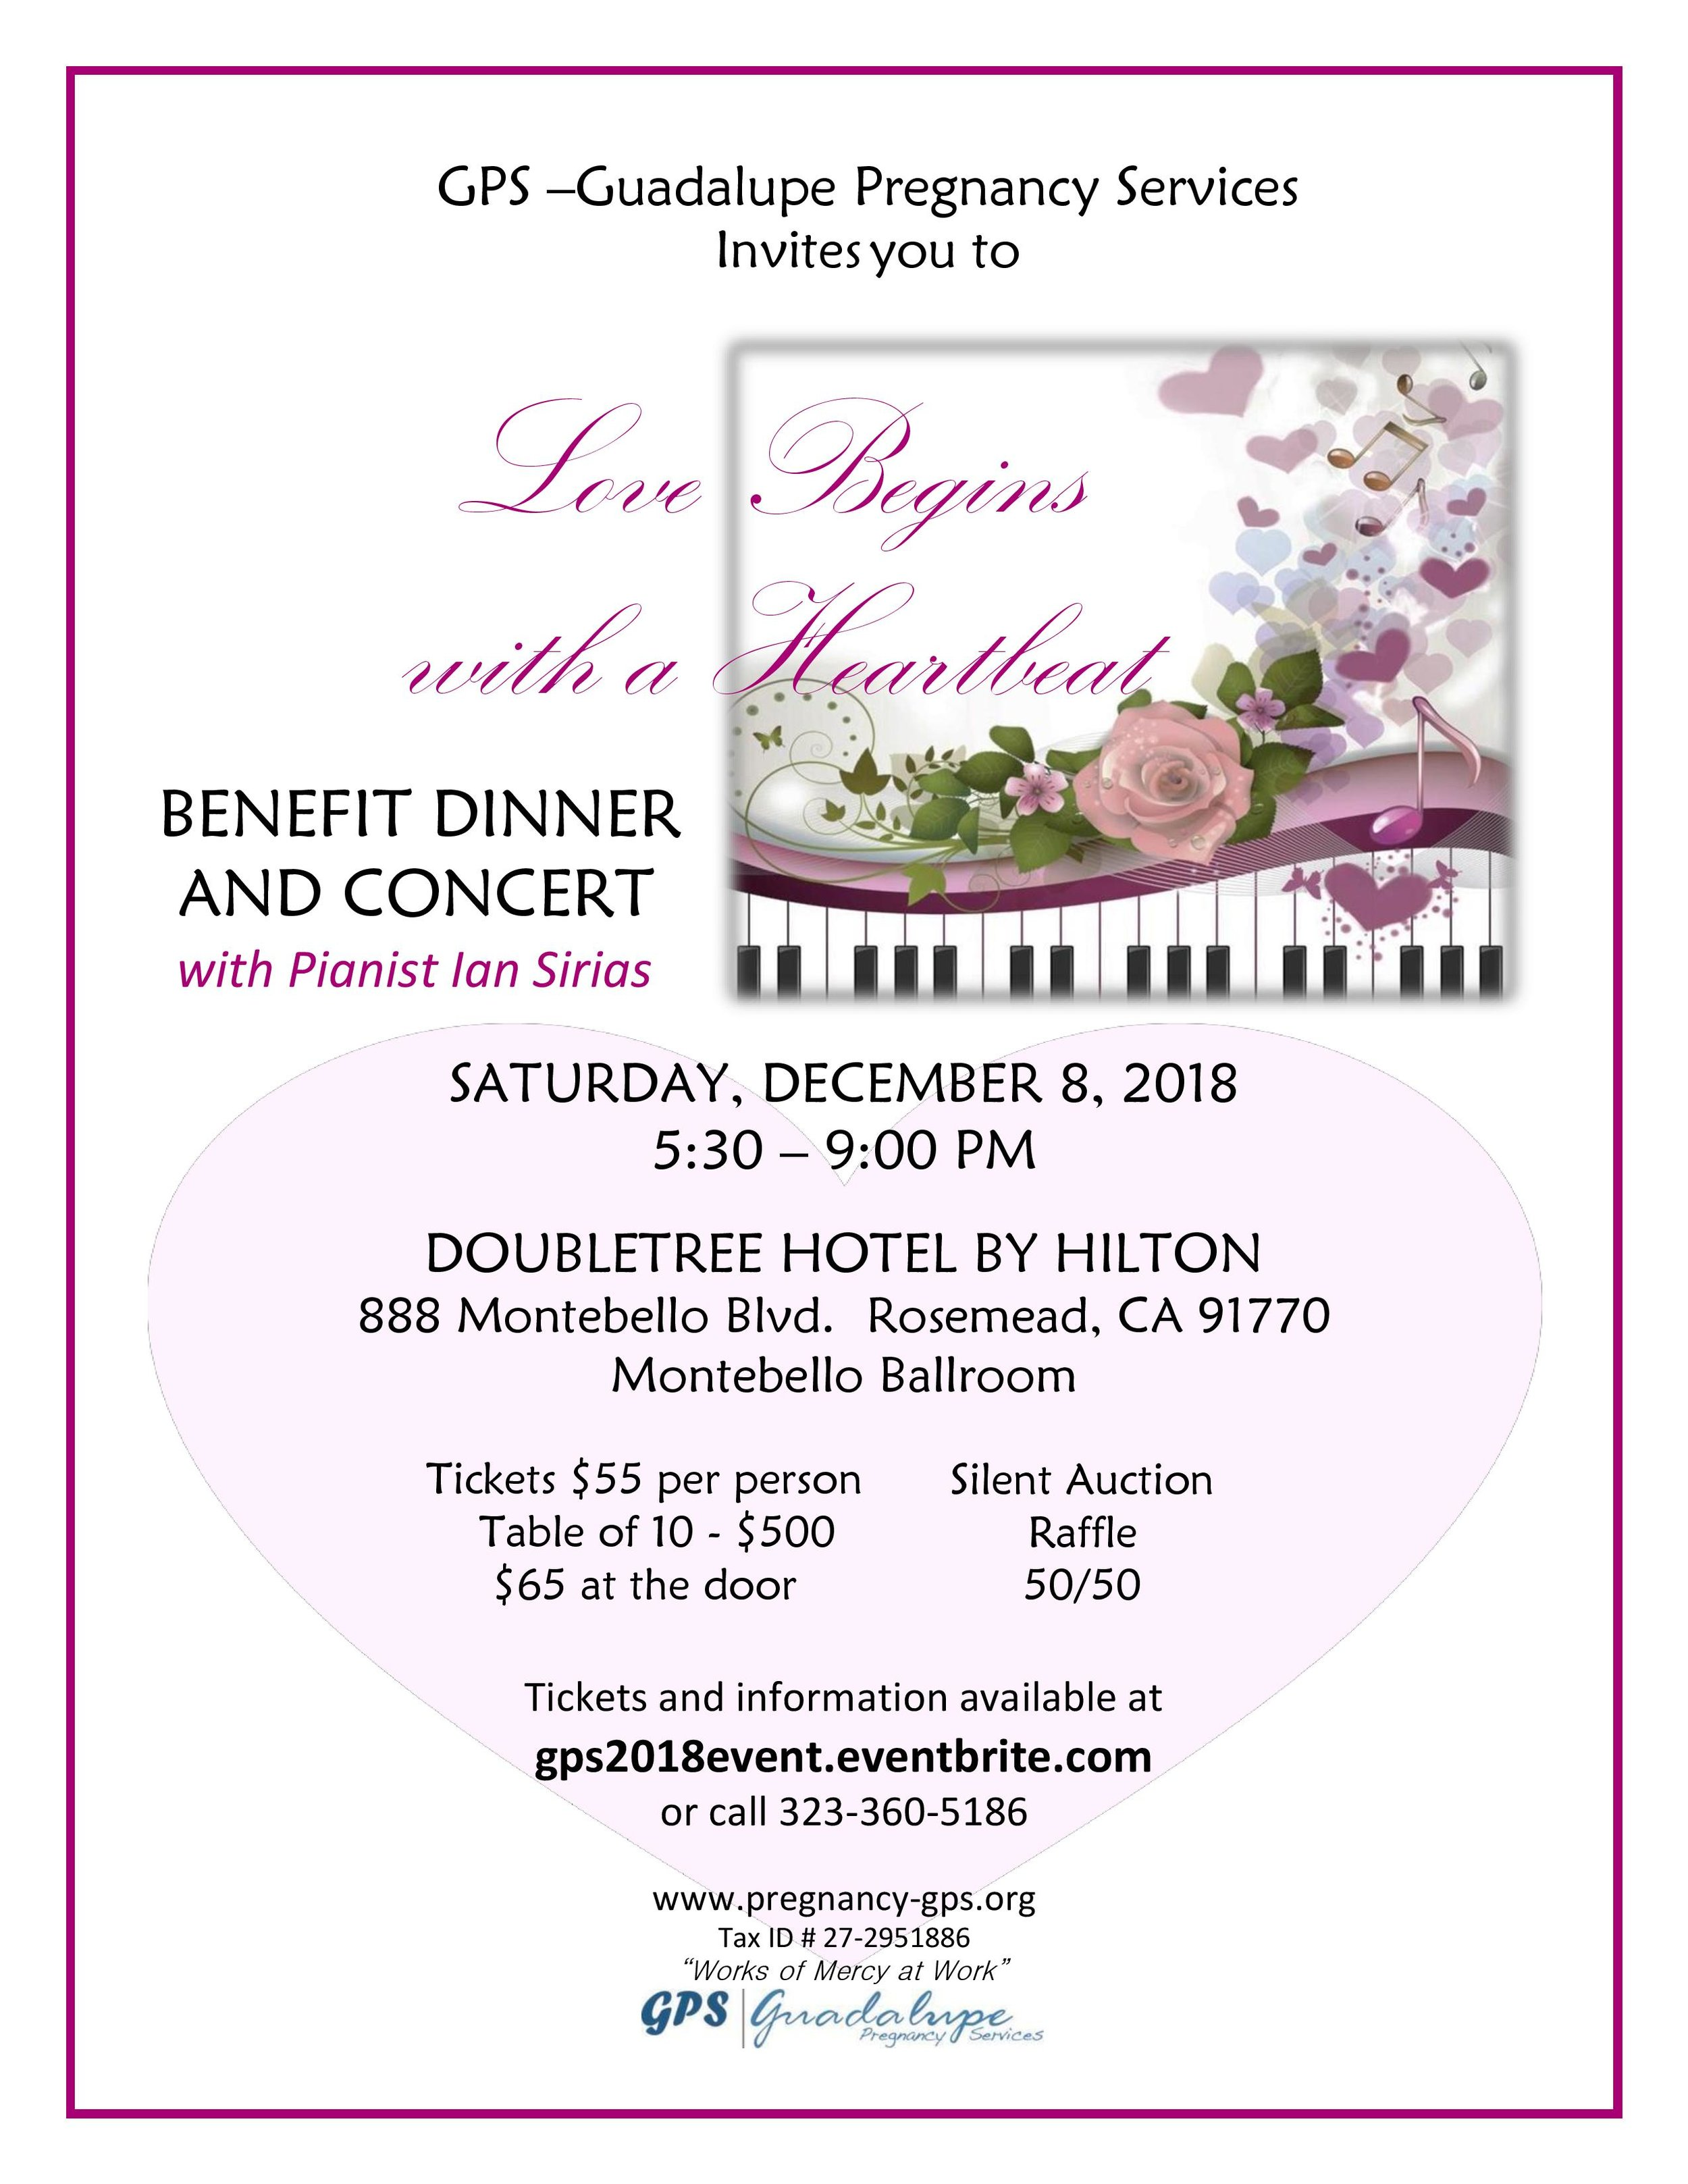 GPS Benefit dinner and concert - December 8th, 2018